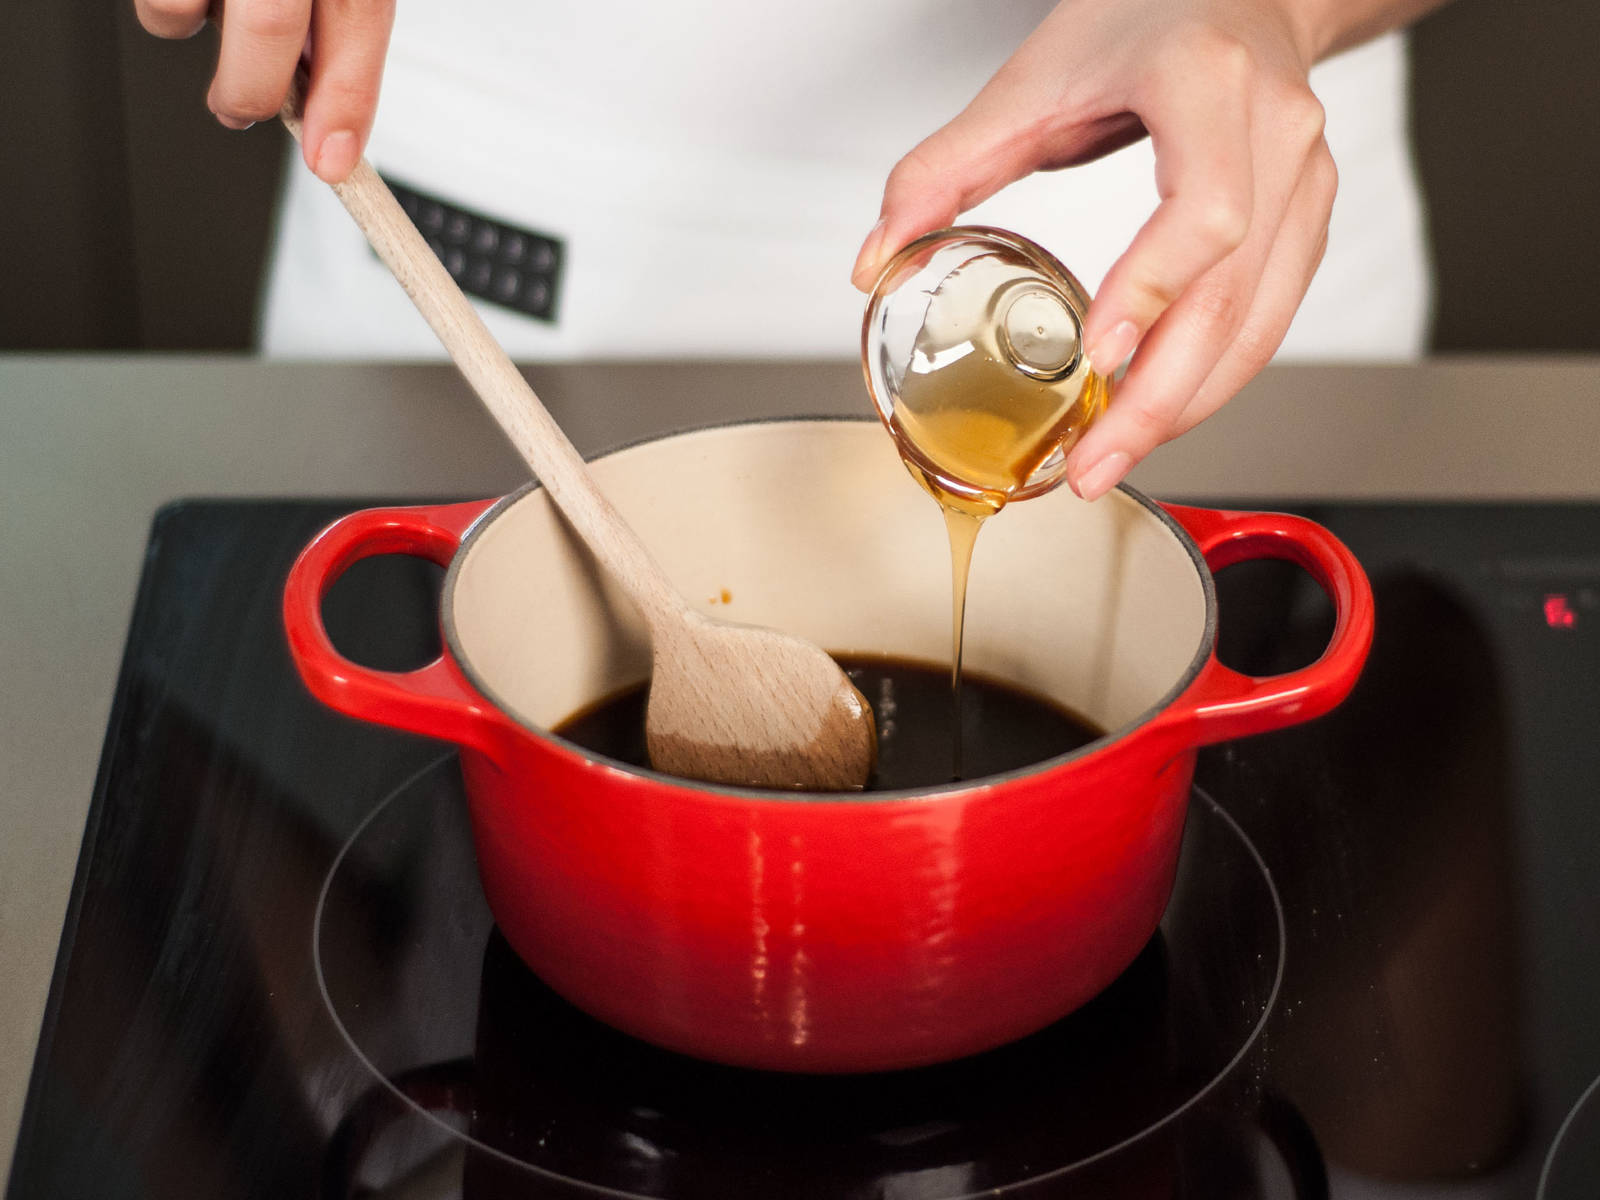 In a saucepan over medium-high heat, combine vegetable stock, soy sauce, mirin, and honey. Boil until volume is reduced by half, approx. 10 – 15 min.